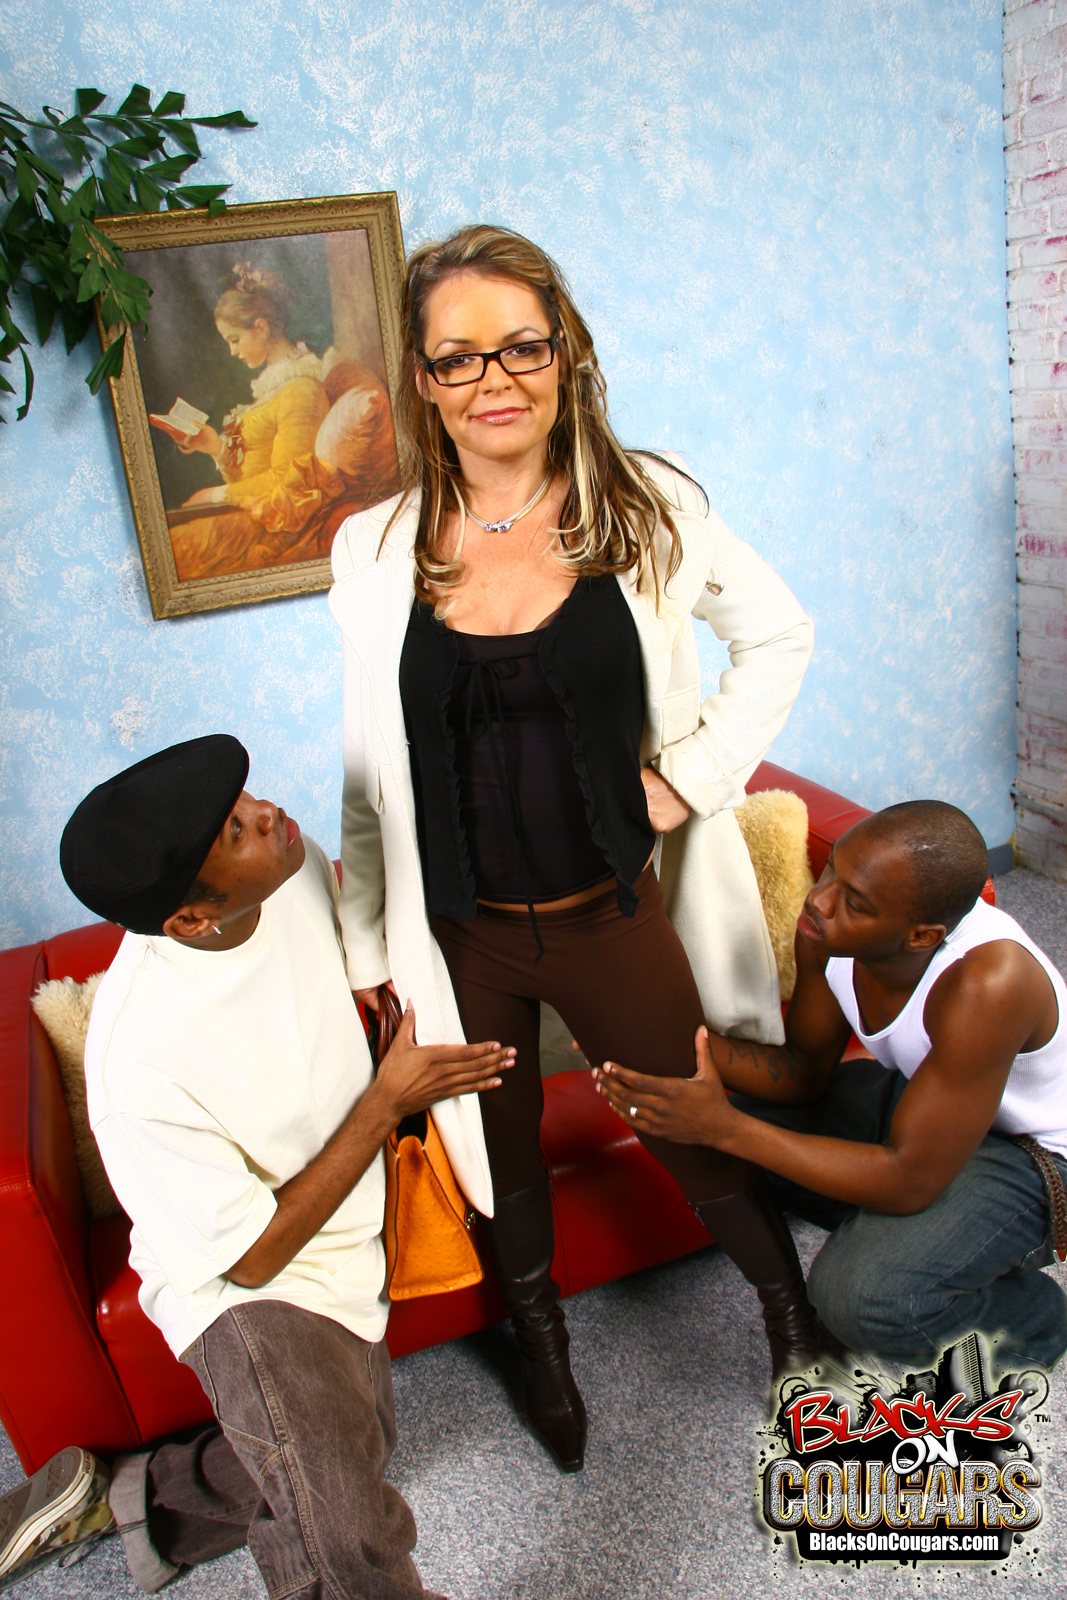 galleries blacksoncougars content kelly leigh pic 06